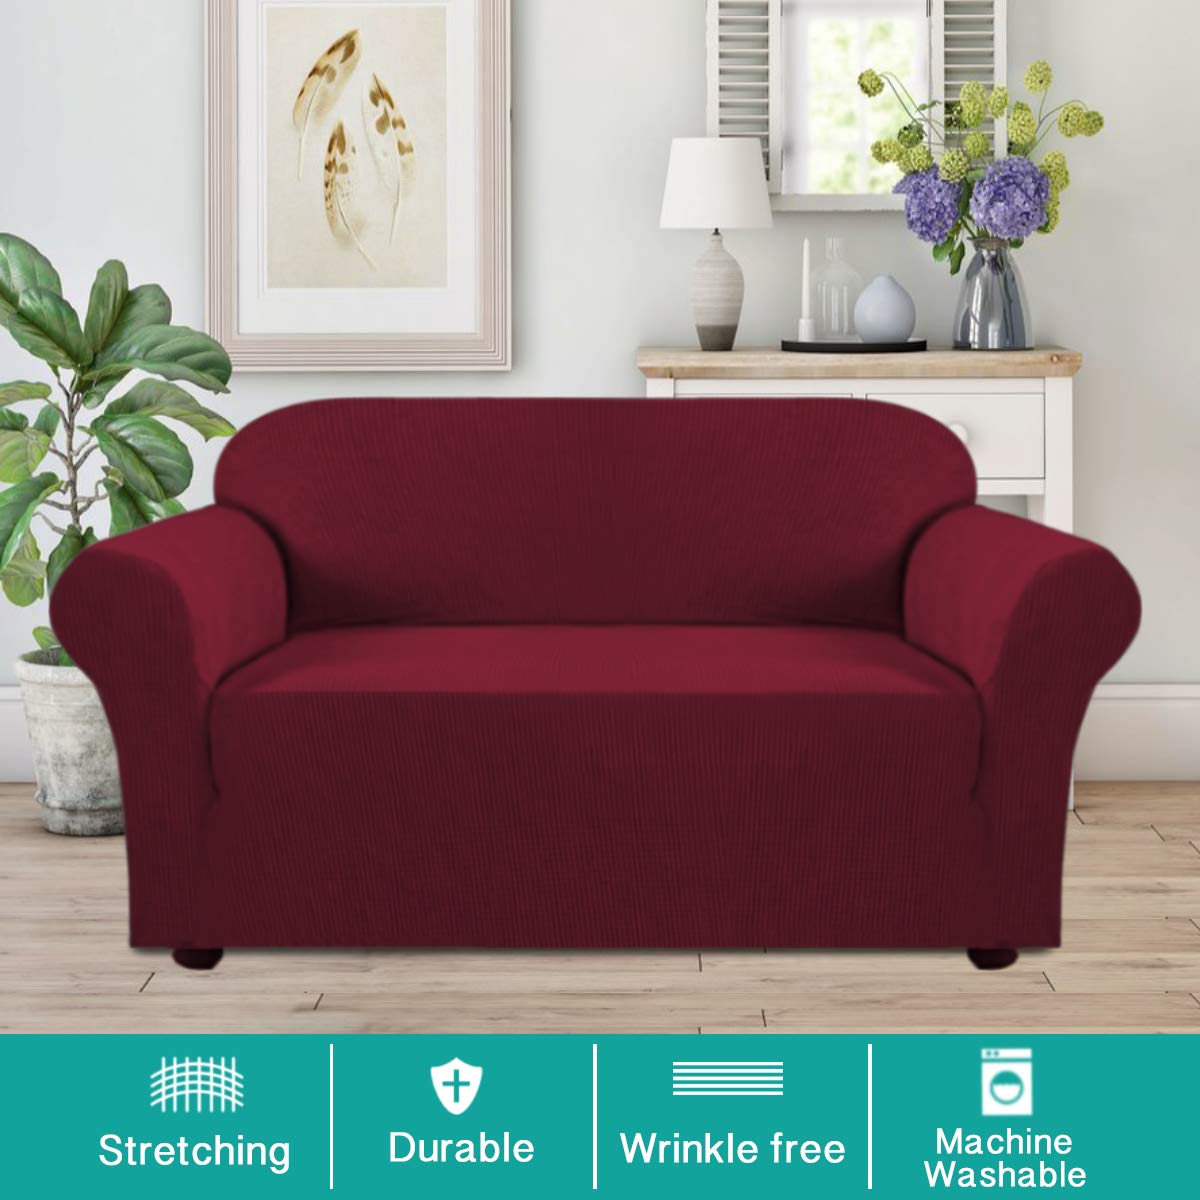 Turquoize Armchair Slipcover 1-Piece Jacquard High Stretch Amrchair Arm Chair Slipcover Machine Washable Stylish Furniture Protector Cover for Sofa and Couch Chair-Brown